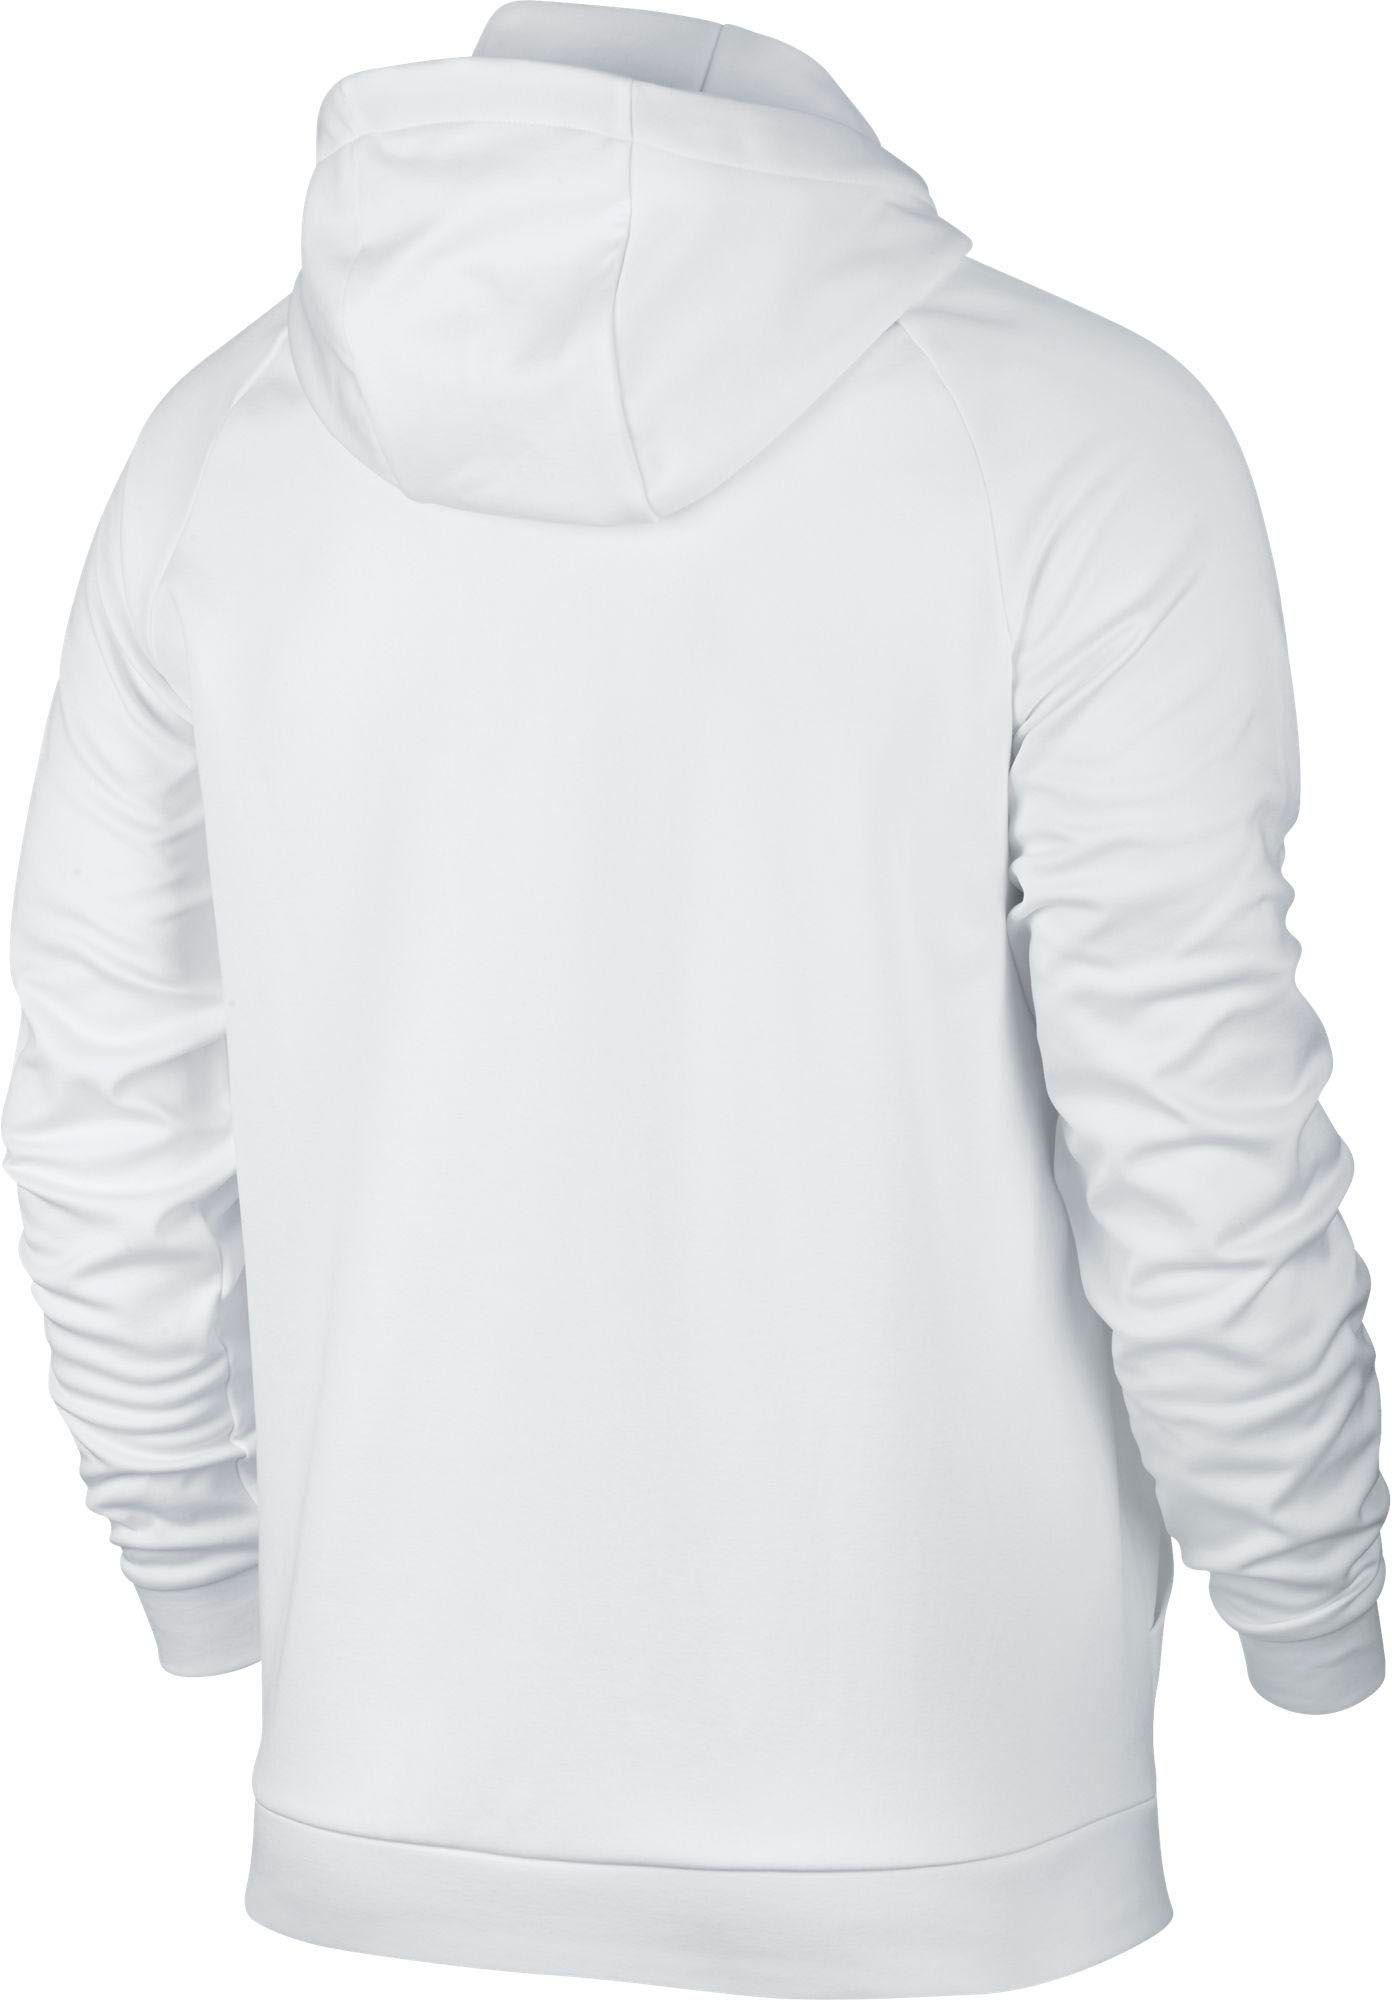 70a1de0ac6 Lyst - Nike Therma Bar Swoosh Hoodie in White for Men